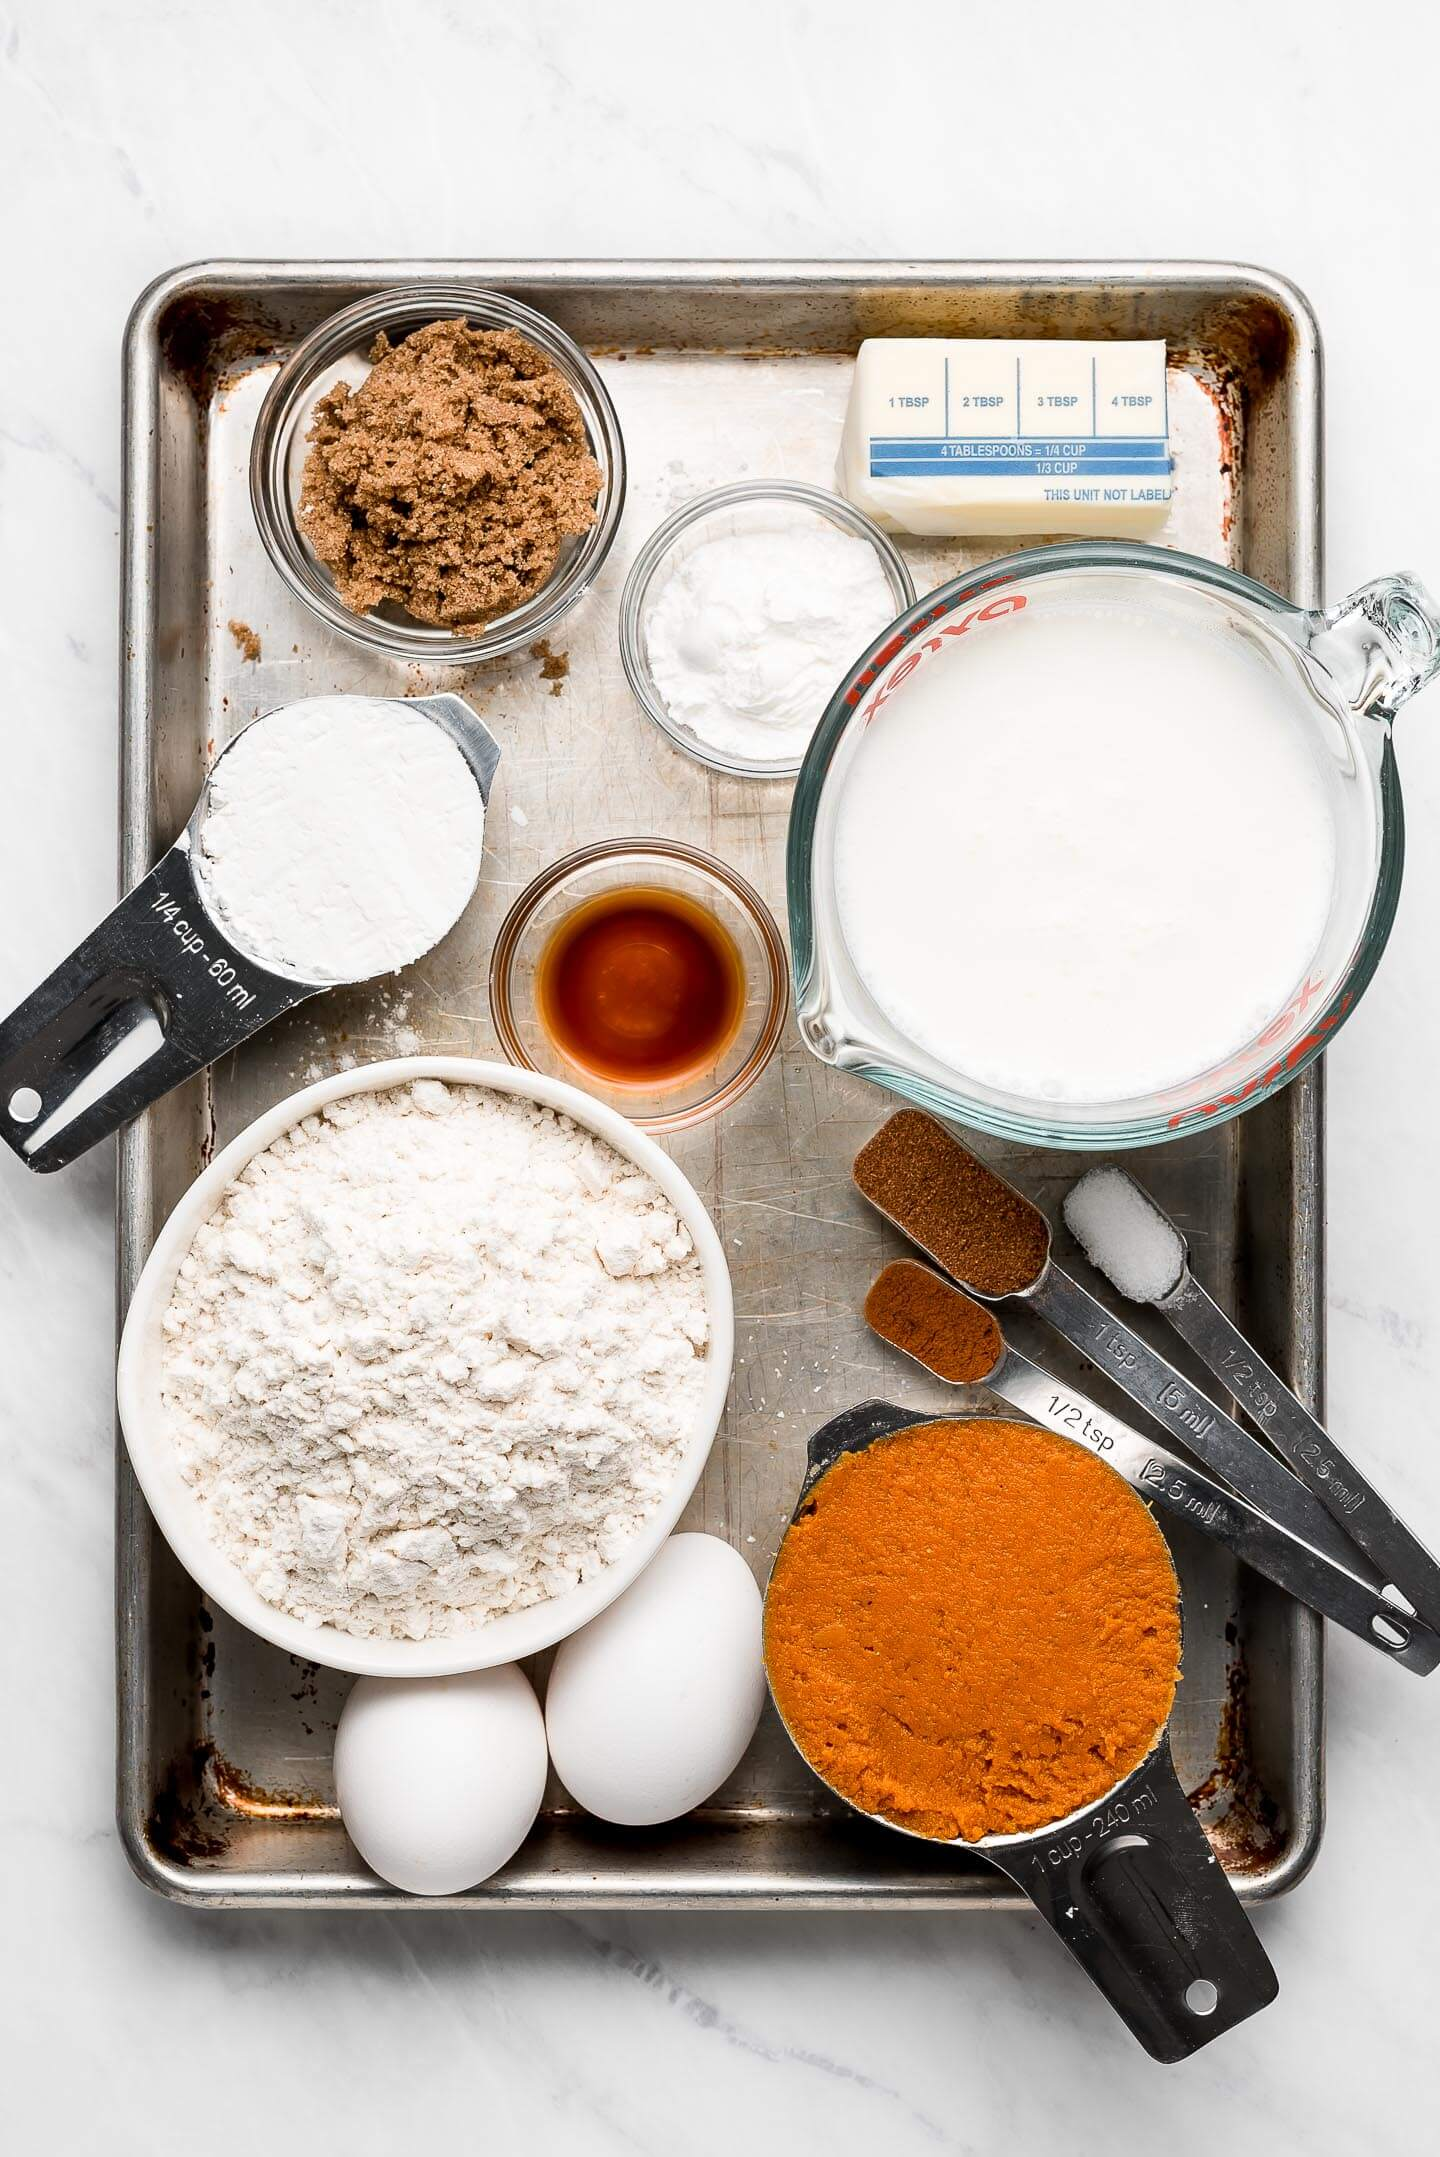 Ingredients (brown sugar, milk, flour, eggs, butter, vanilla, spices) on a baking sheet.